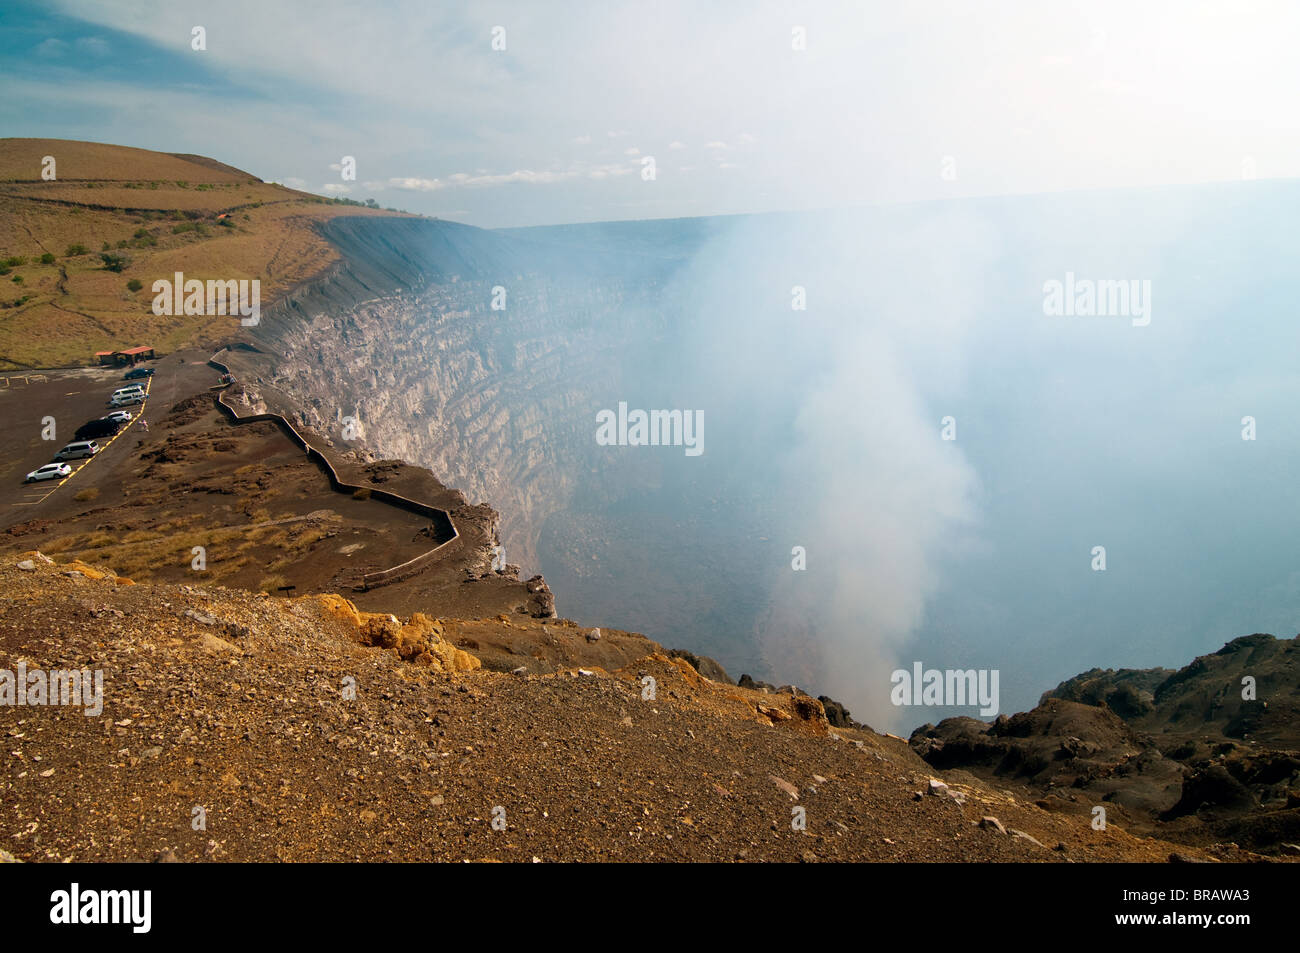 The picture of the Volcano Masaya in Nicaragua - Stock Image